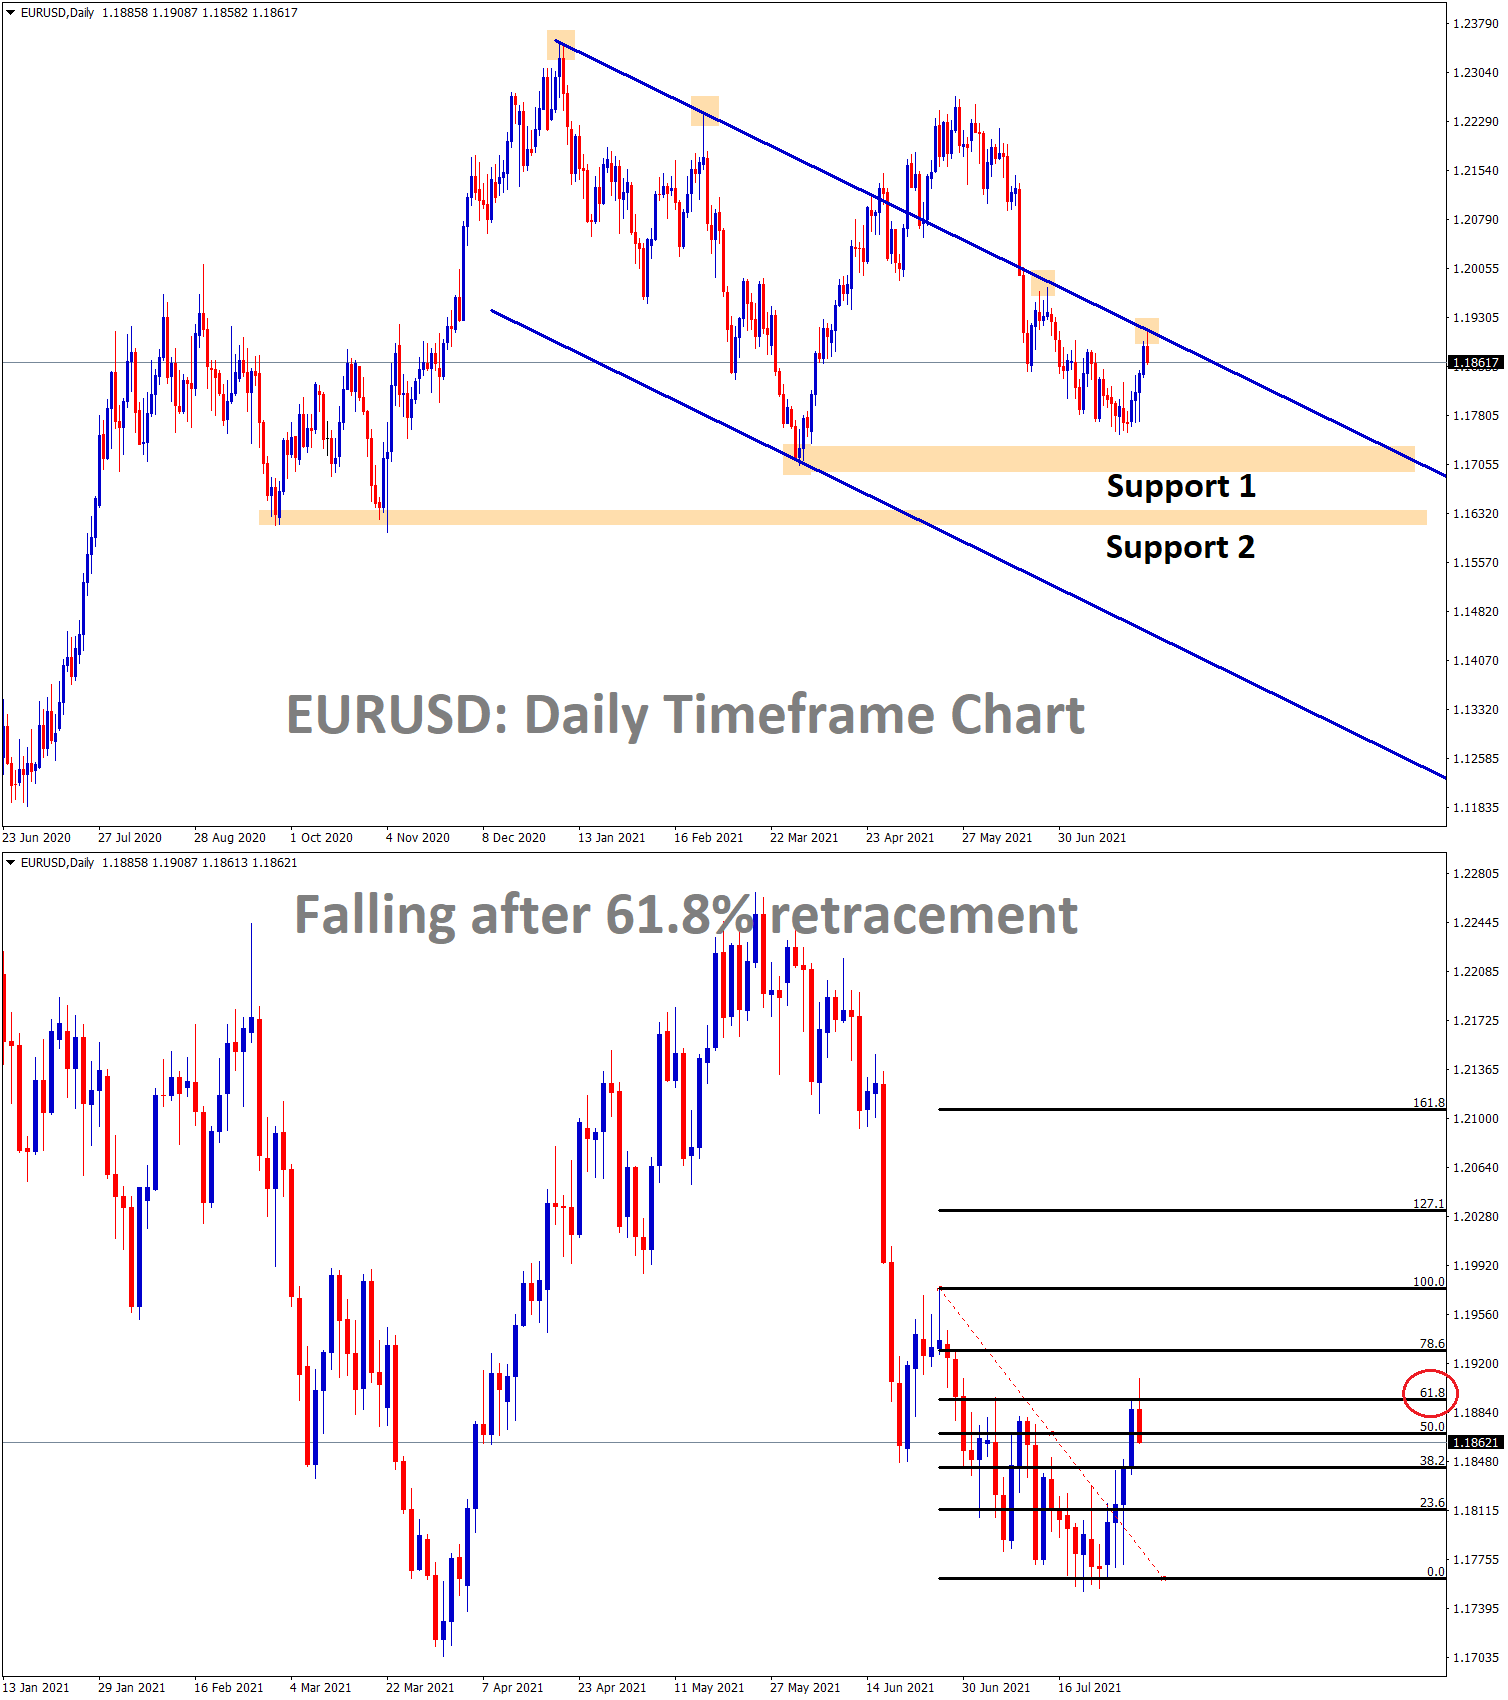 EURUSD is falling from the lower high zone of the previous descending channel range EURUSD made a 61.8 retracement and started making a correction.